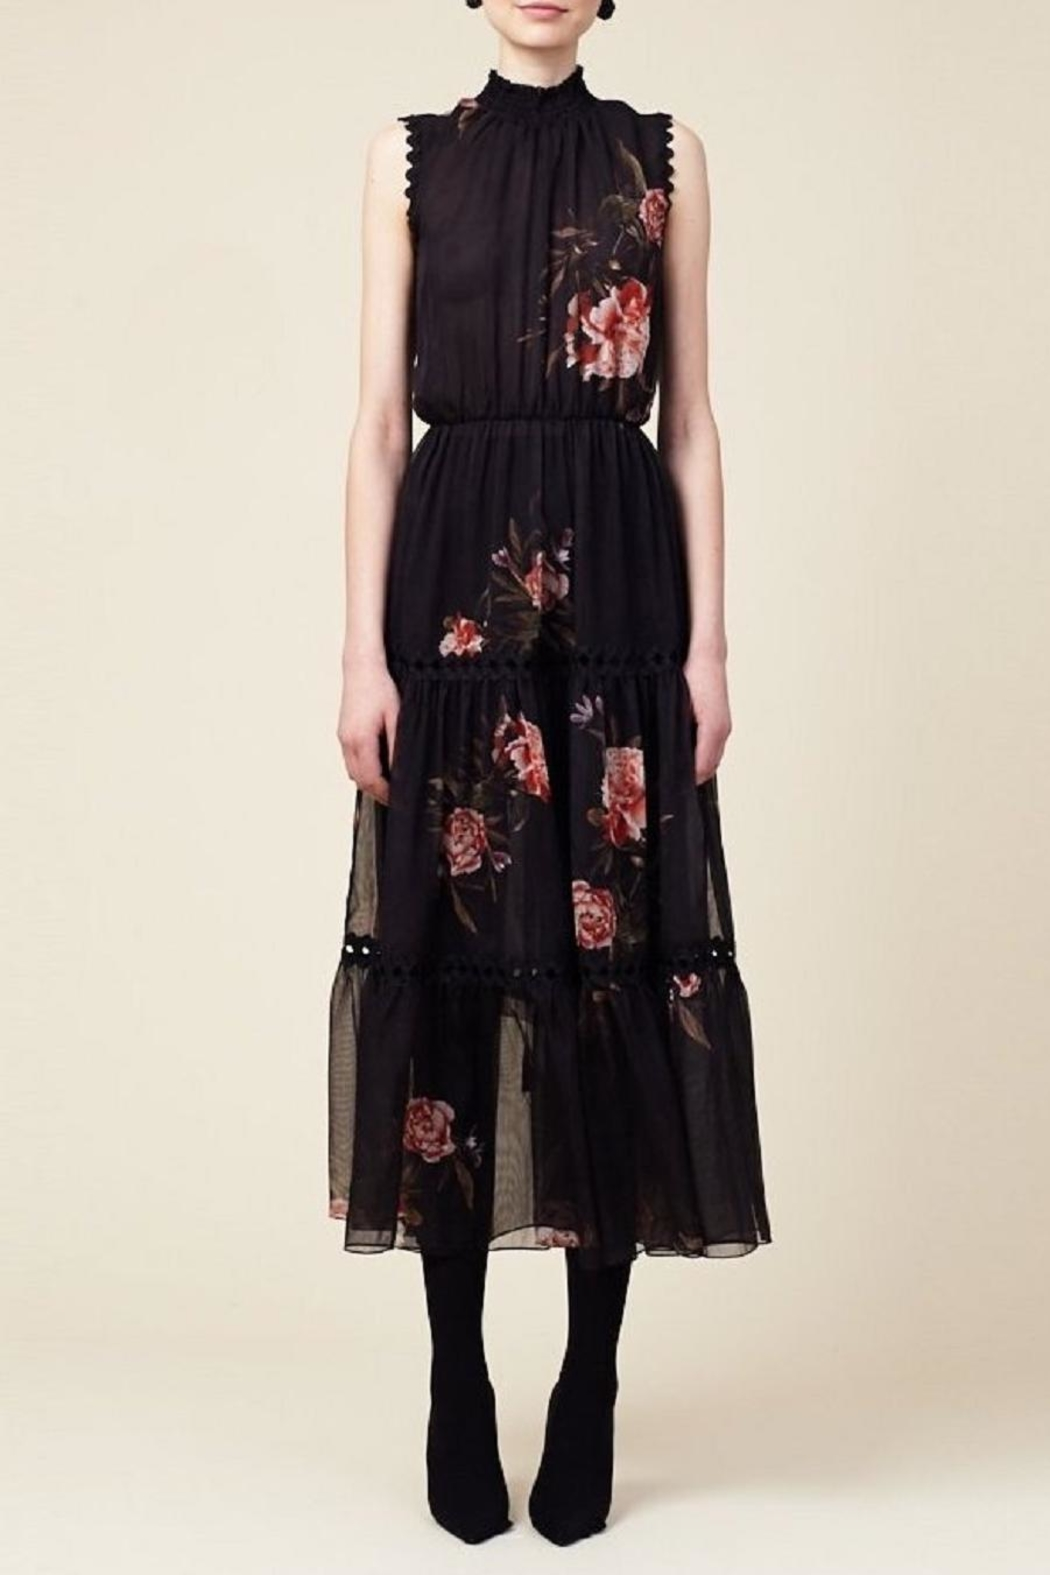 Sachin + Babi Sleeveless Floral Dress - Front Cropped Image